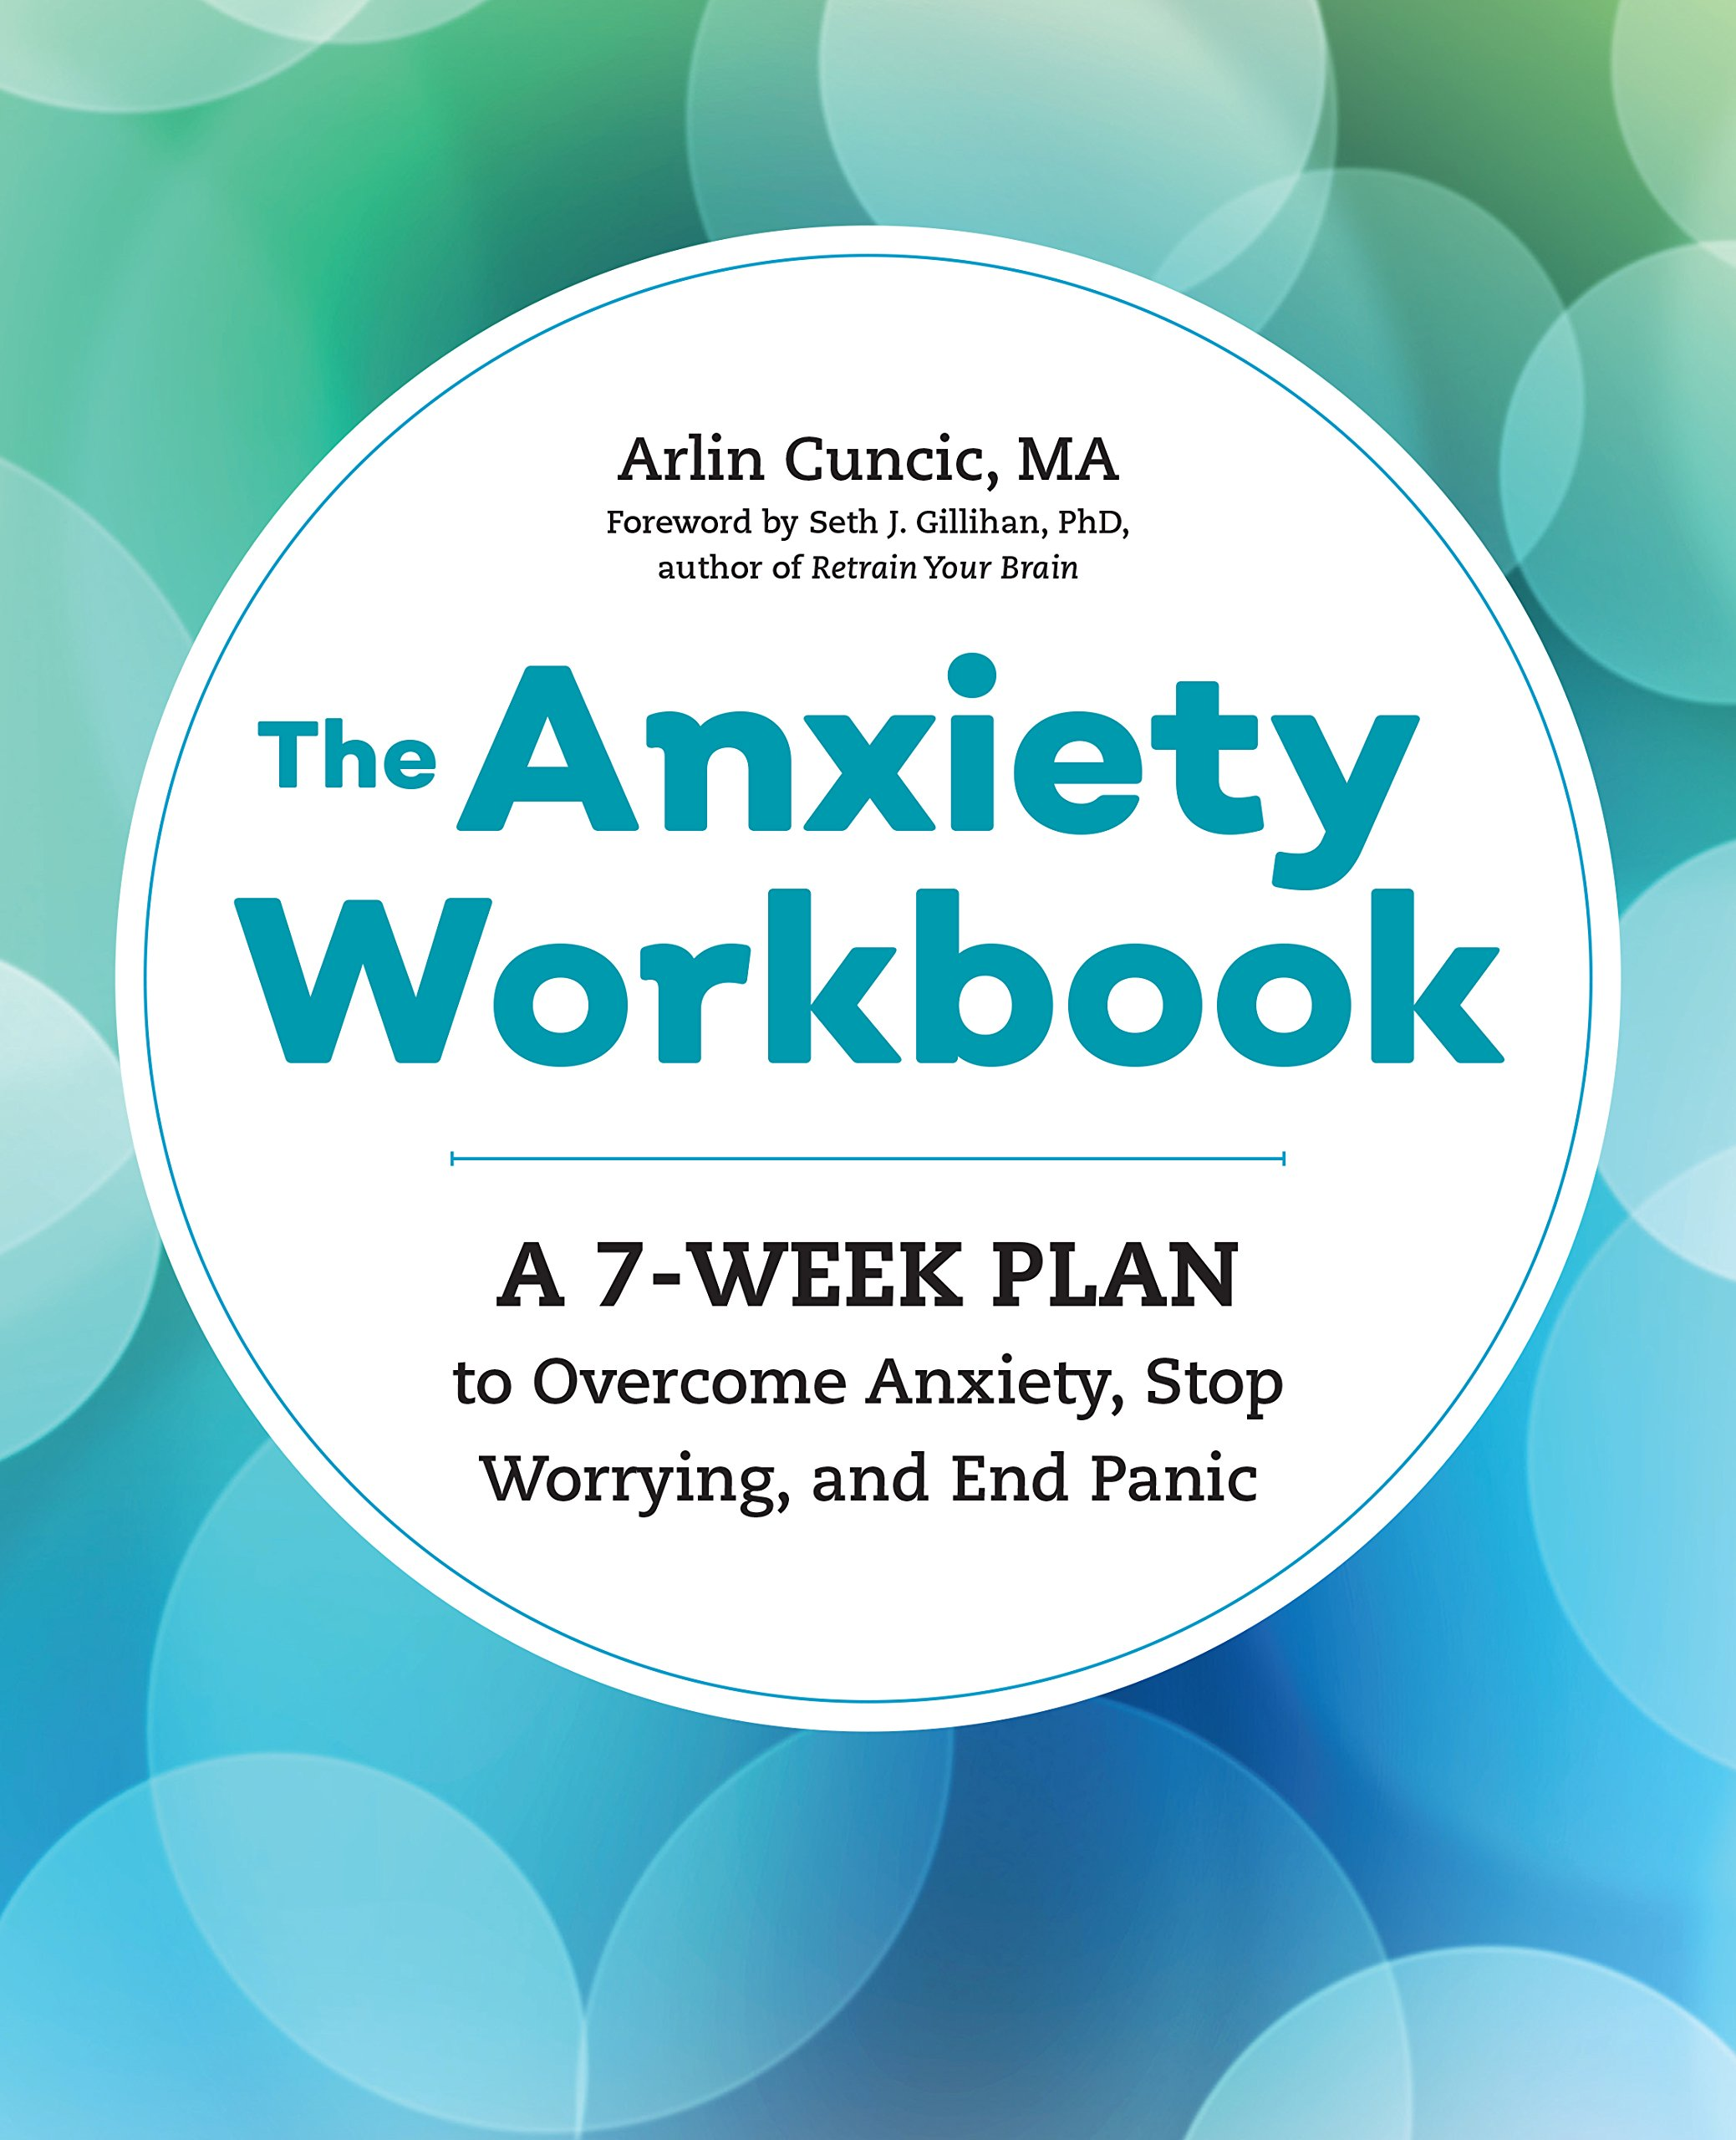 Anxiety Workbook 7 Week Overcome Worrying product image